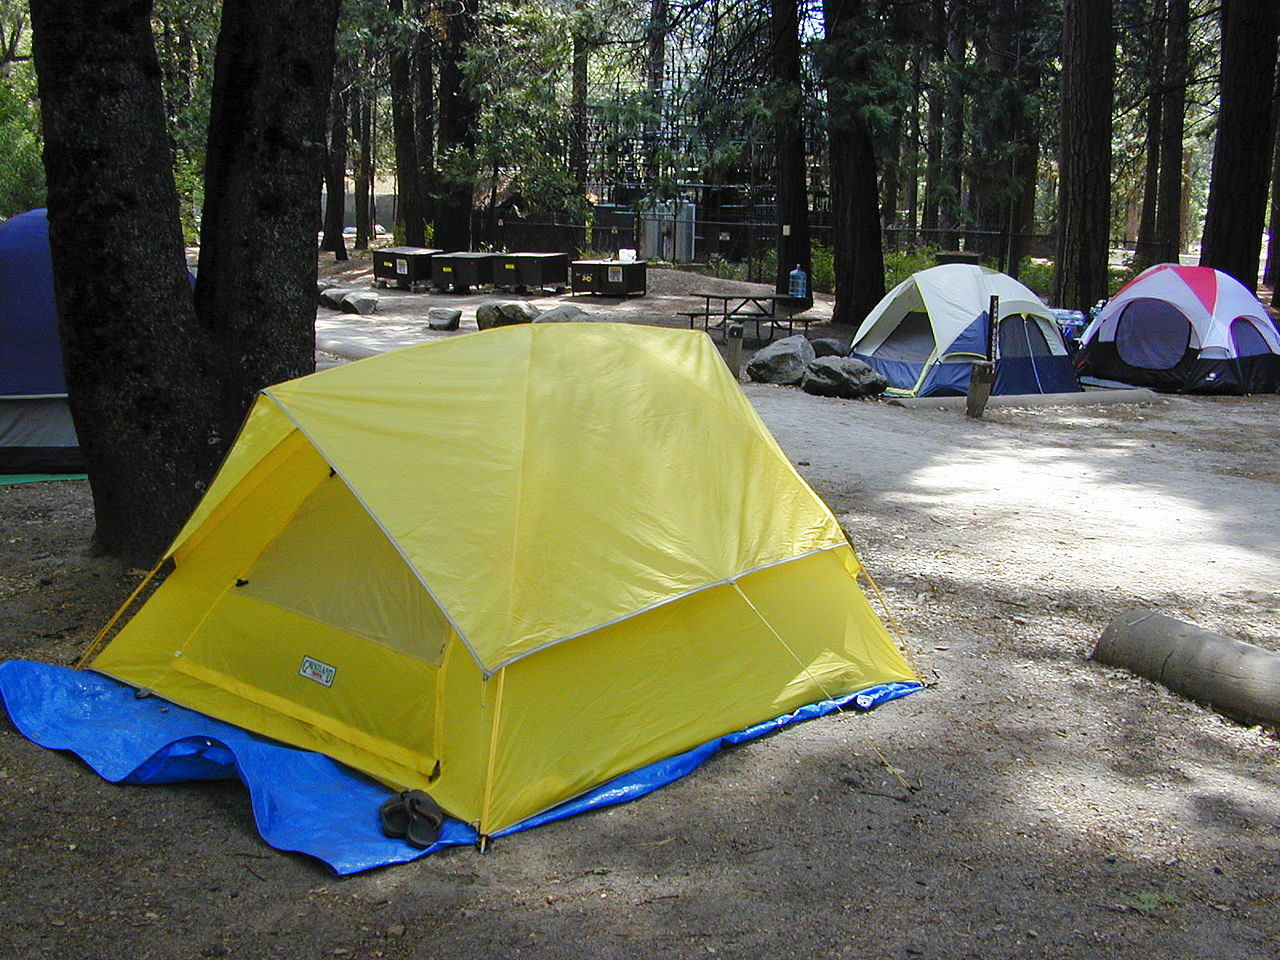 Must-Visit Attraction of Yosemite-Camping in the Yosemite National Park